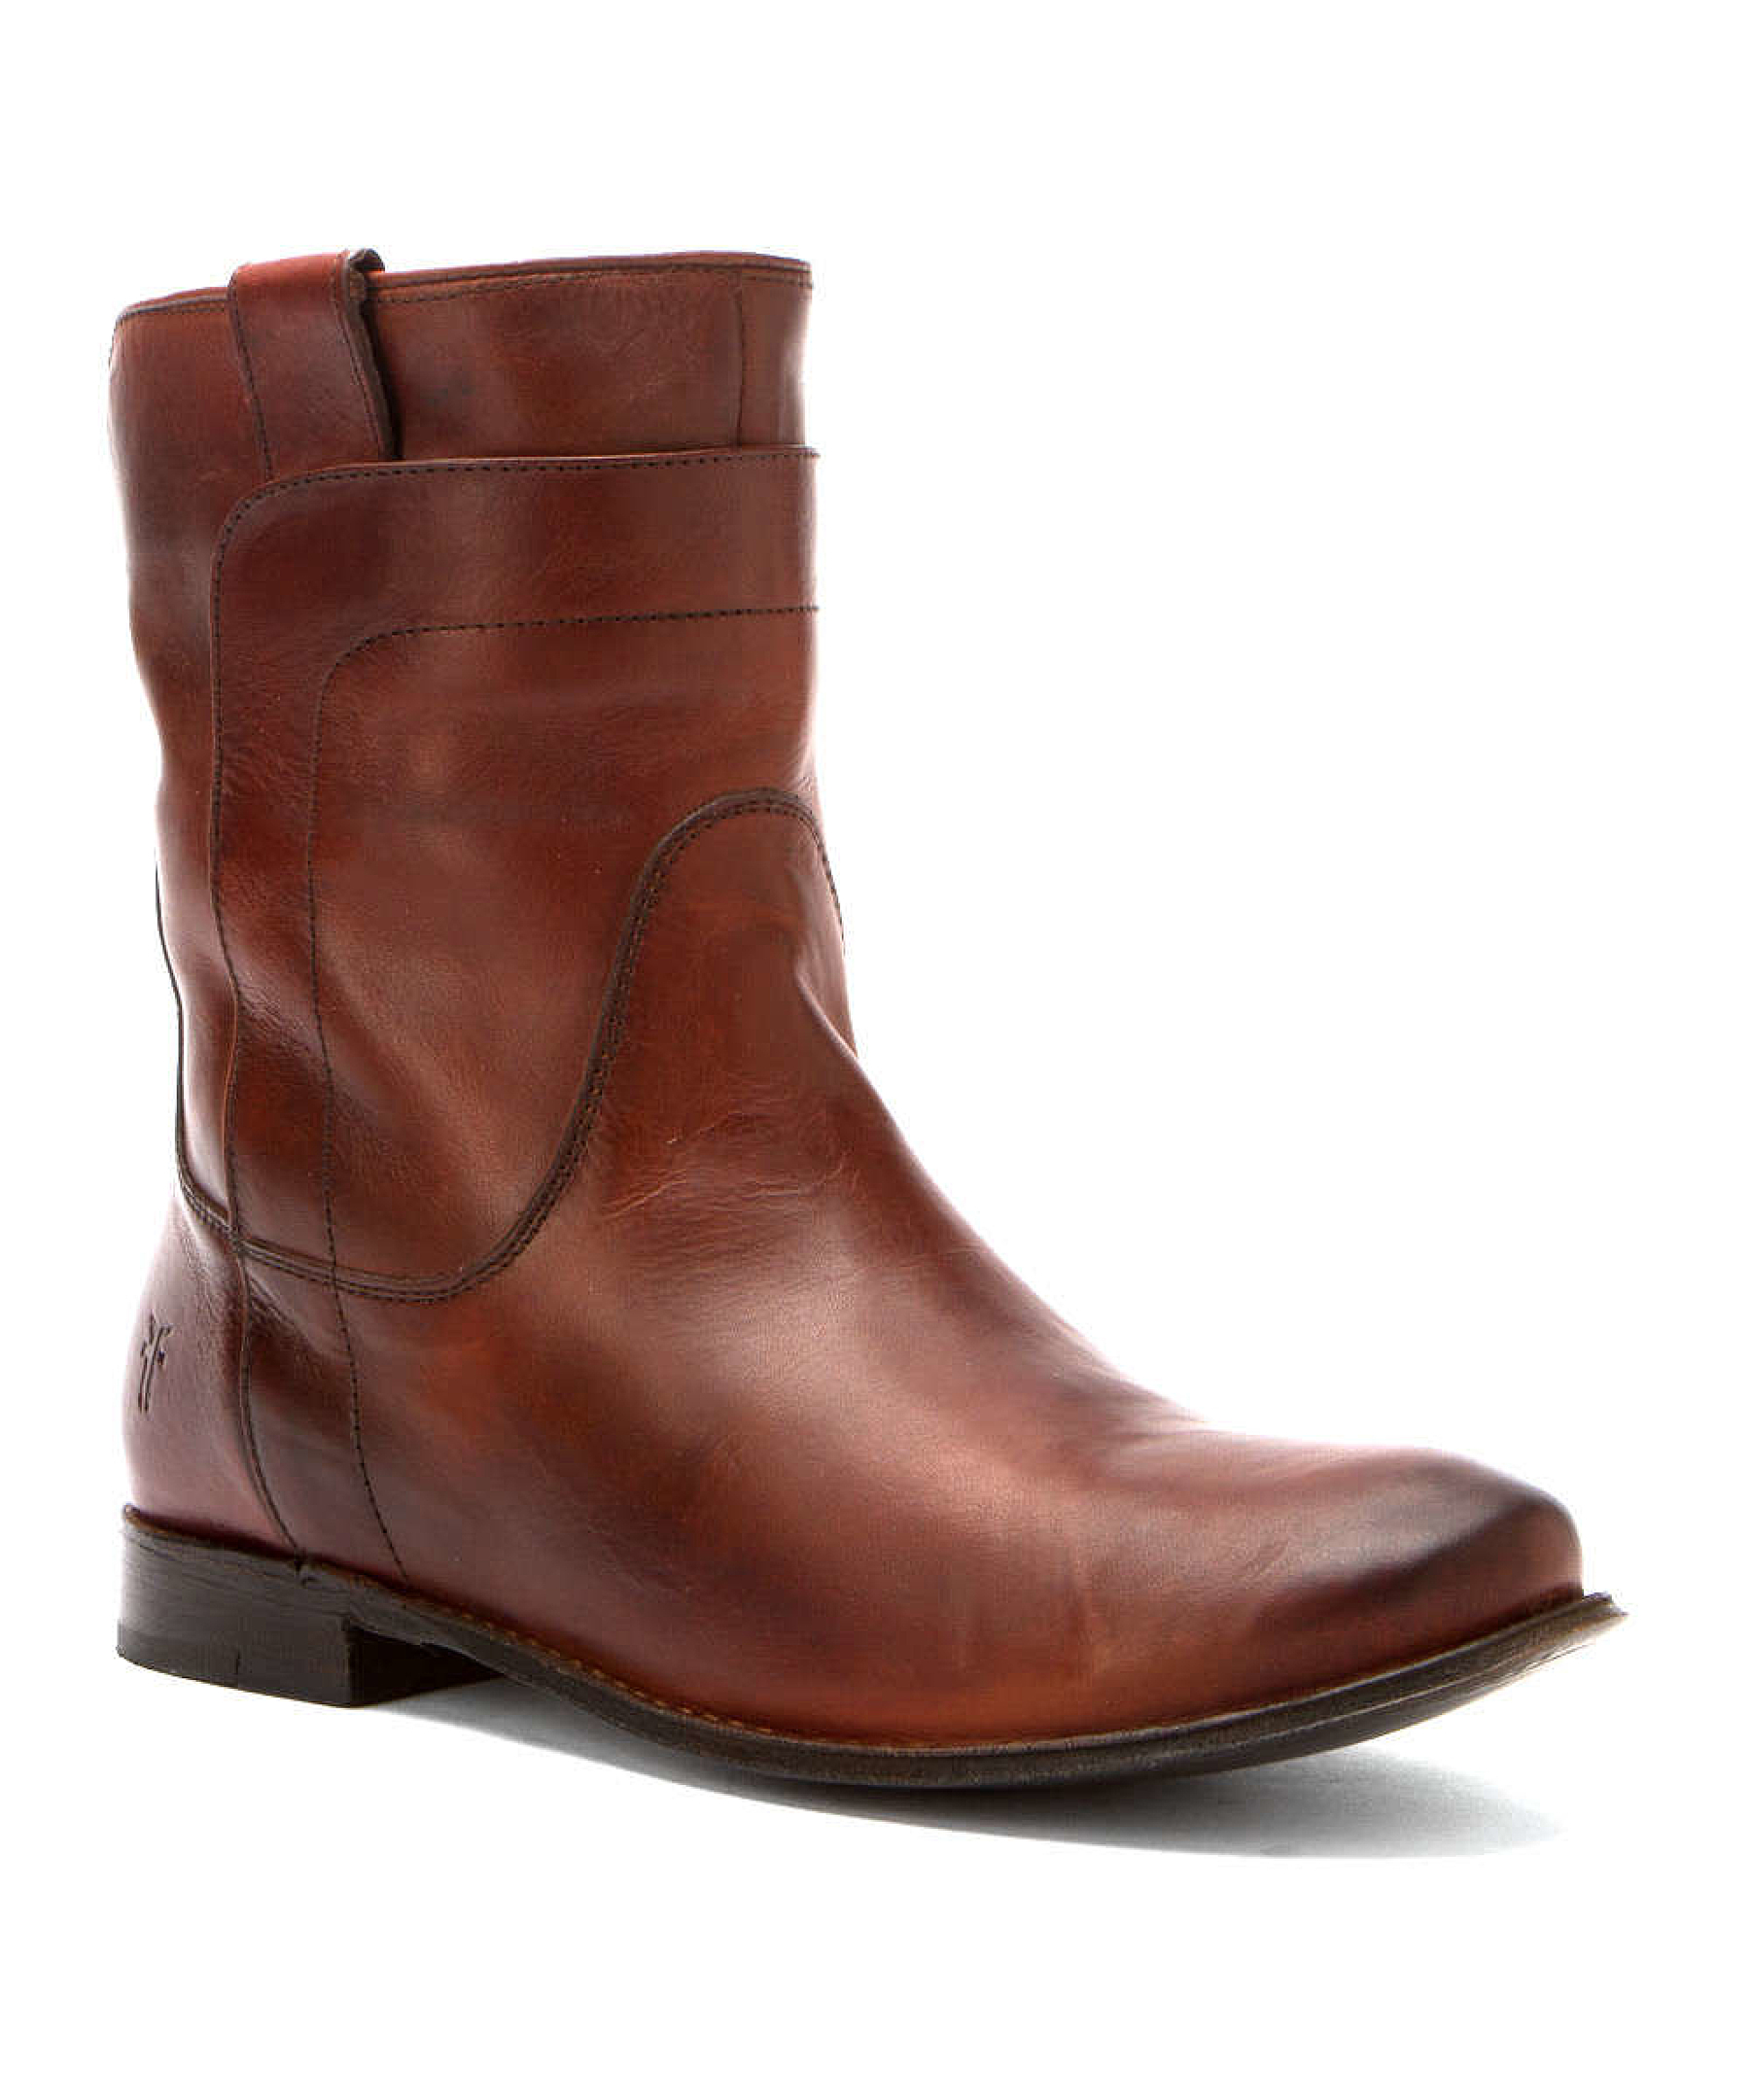 Creative Petite-friendly Narrow-calf Leather Riding Boots Ariat York - Extra Petite